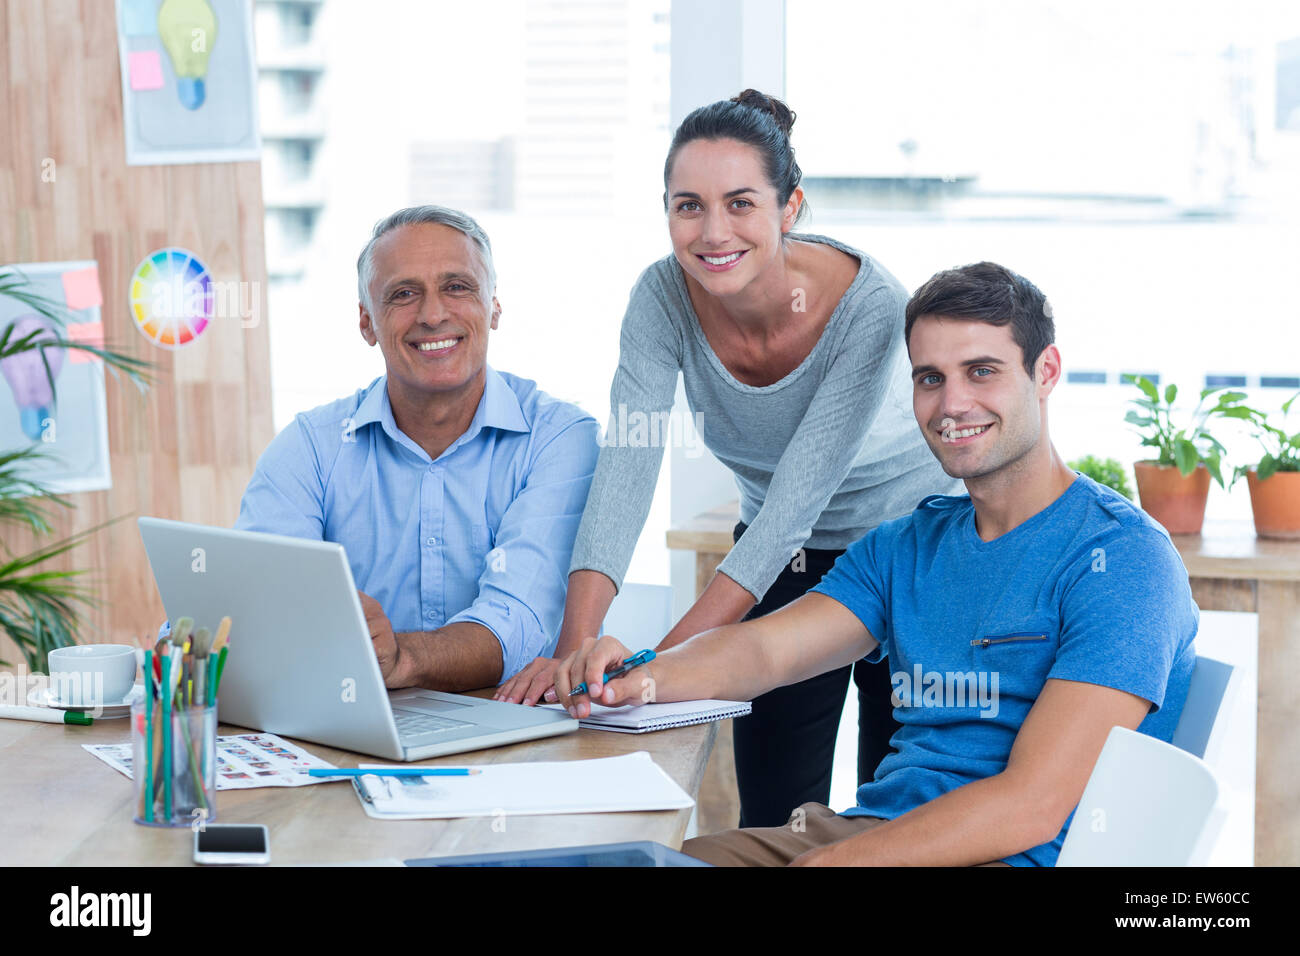 Business people in a meeting at the office - Stock Image